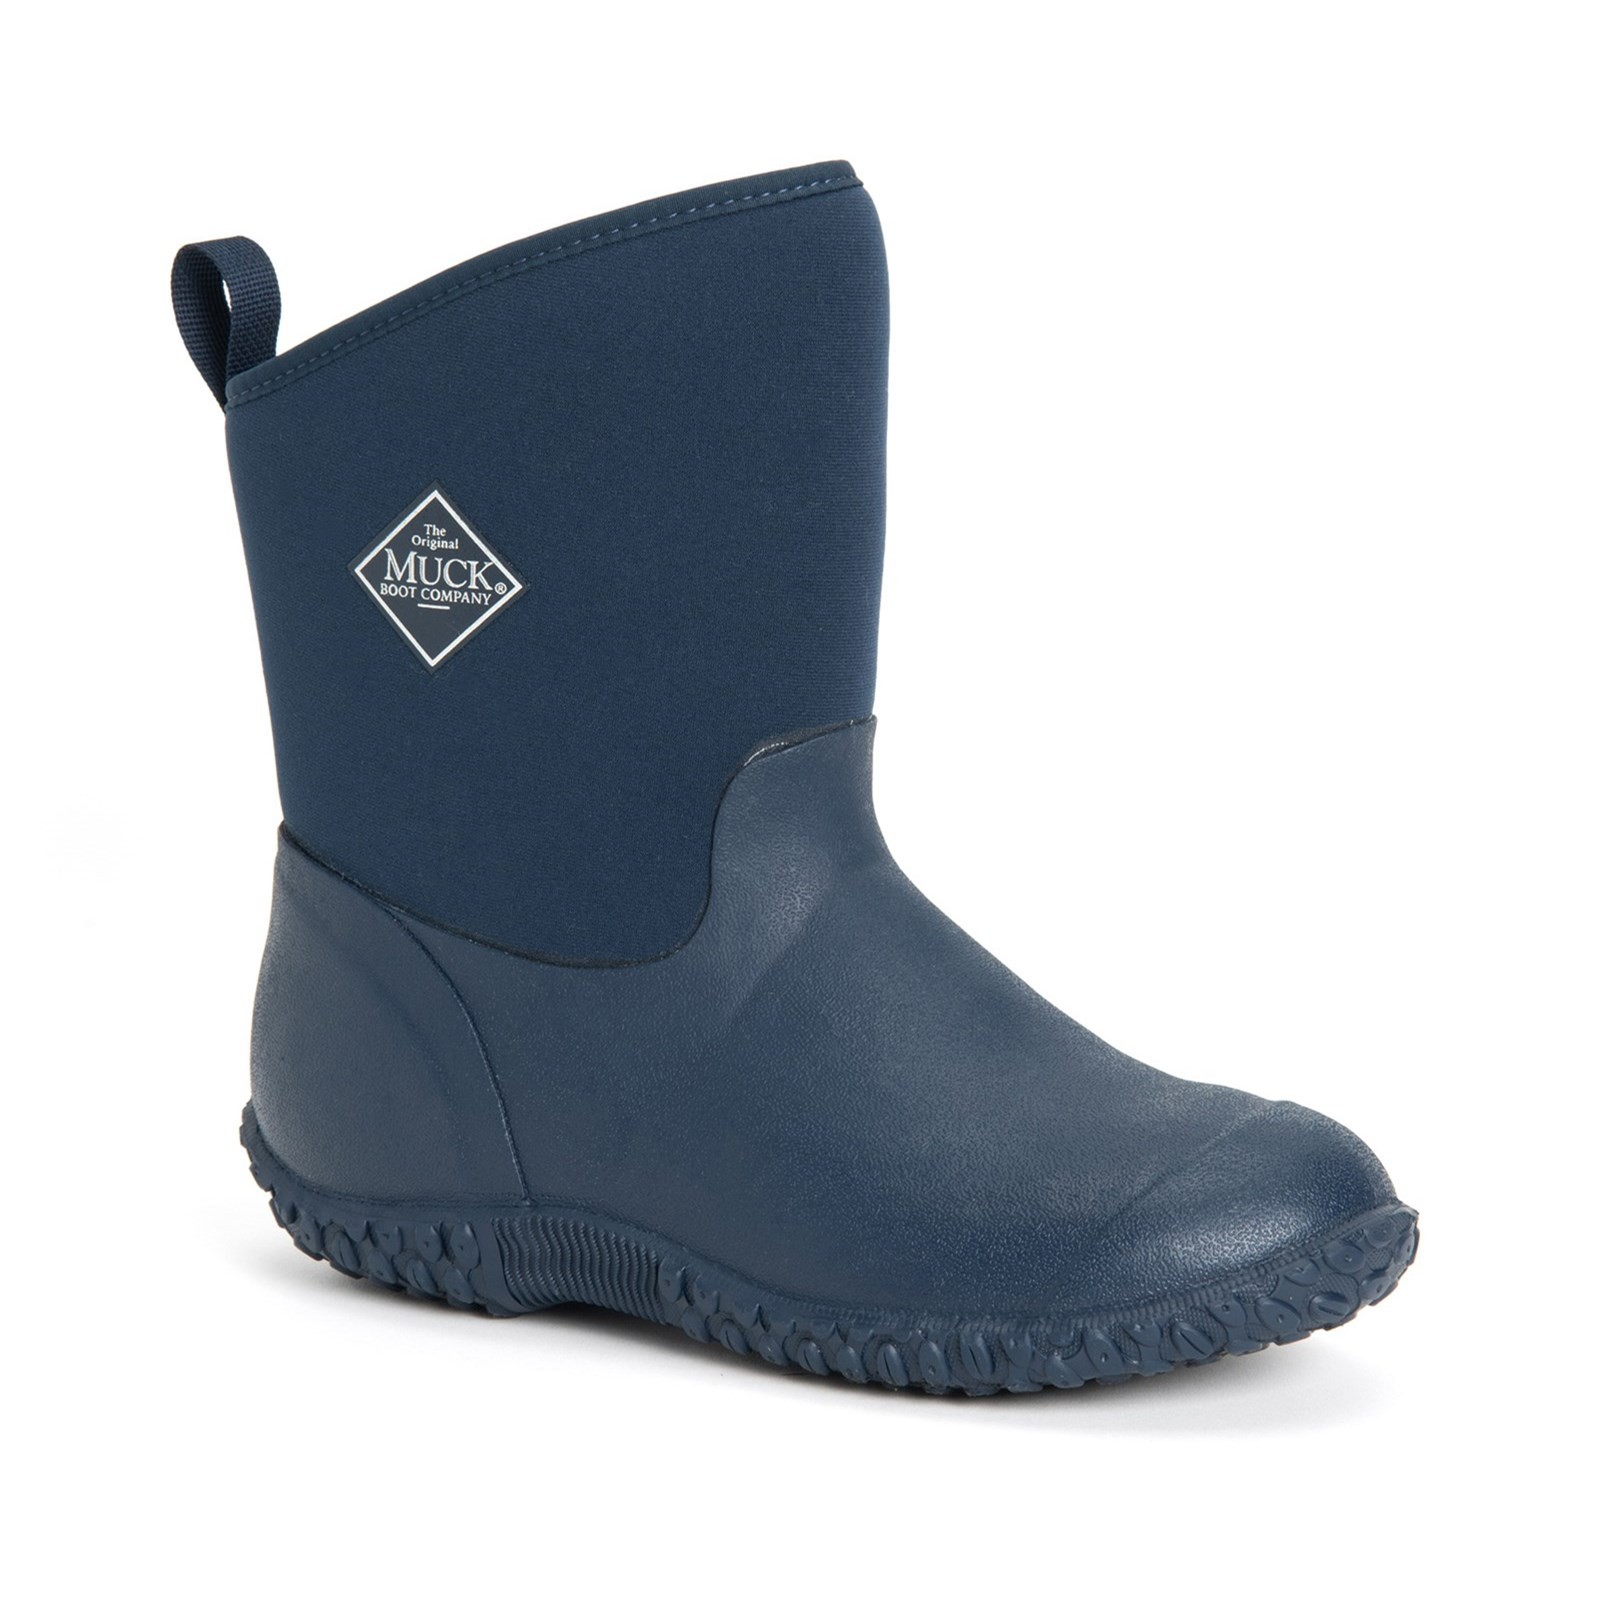 Muck Boot Muckster II Mid Shearling Size 4 UK